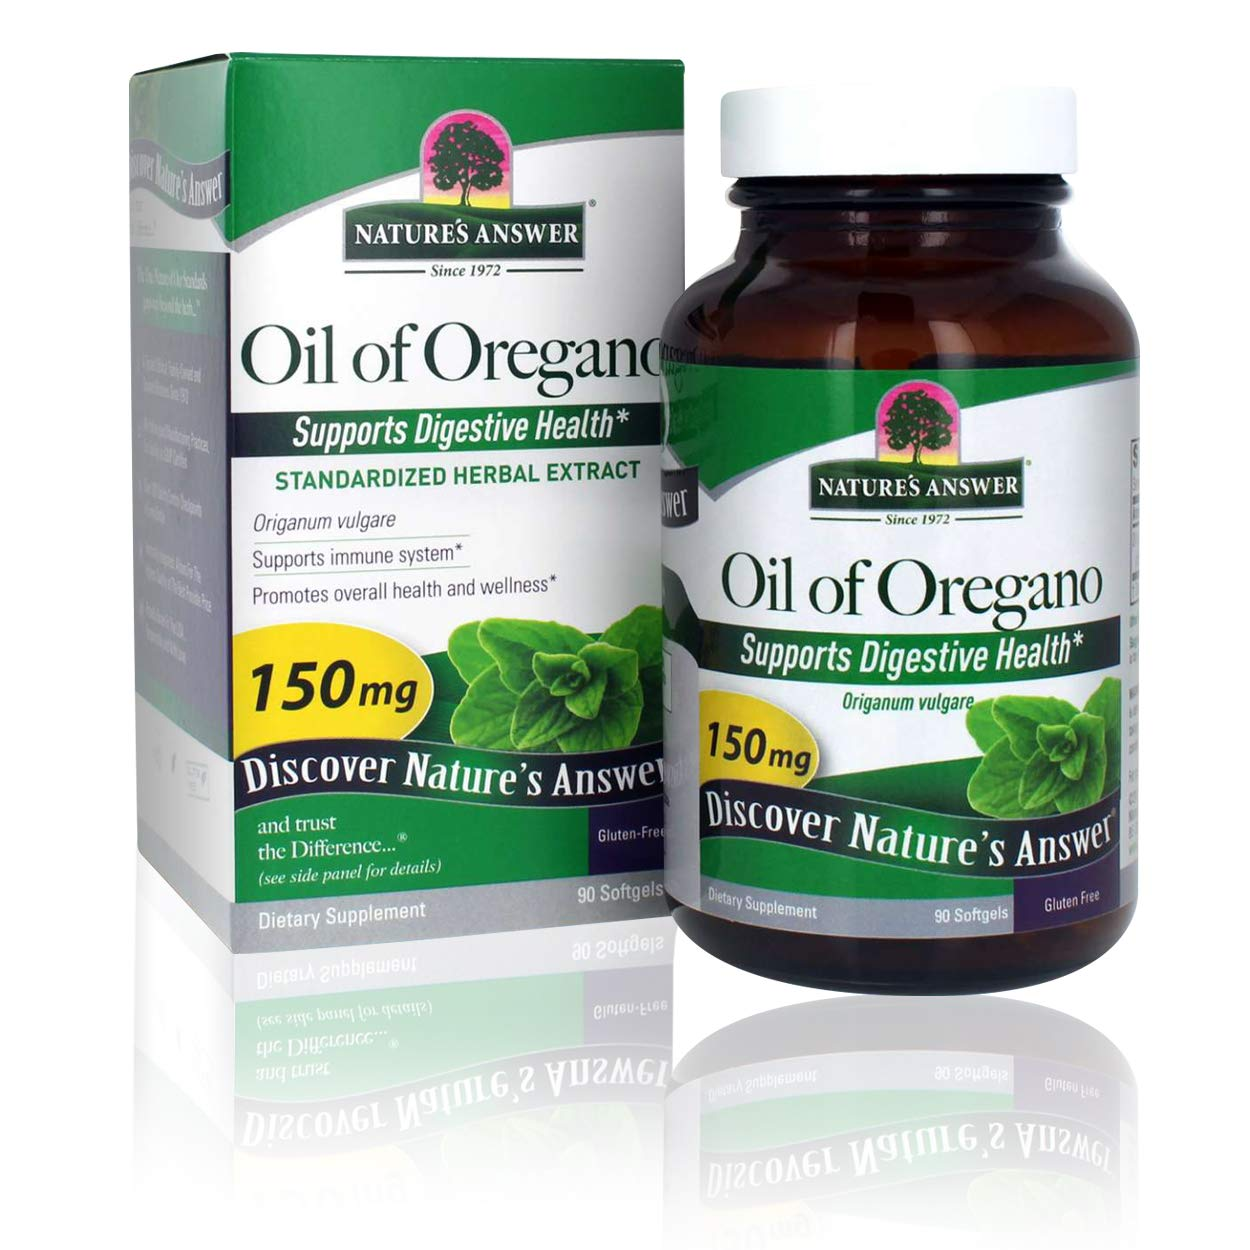 Nature's Answer Oil of Oregano Capsule Softgels, 90-Count | Natural Immune Booster | Promotes Healthy Digestion & Gut Flora: Health & Personal Care